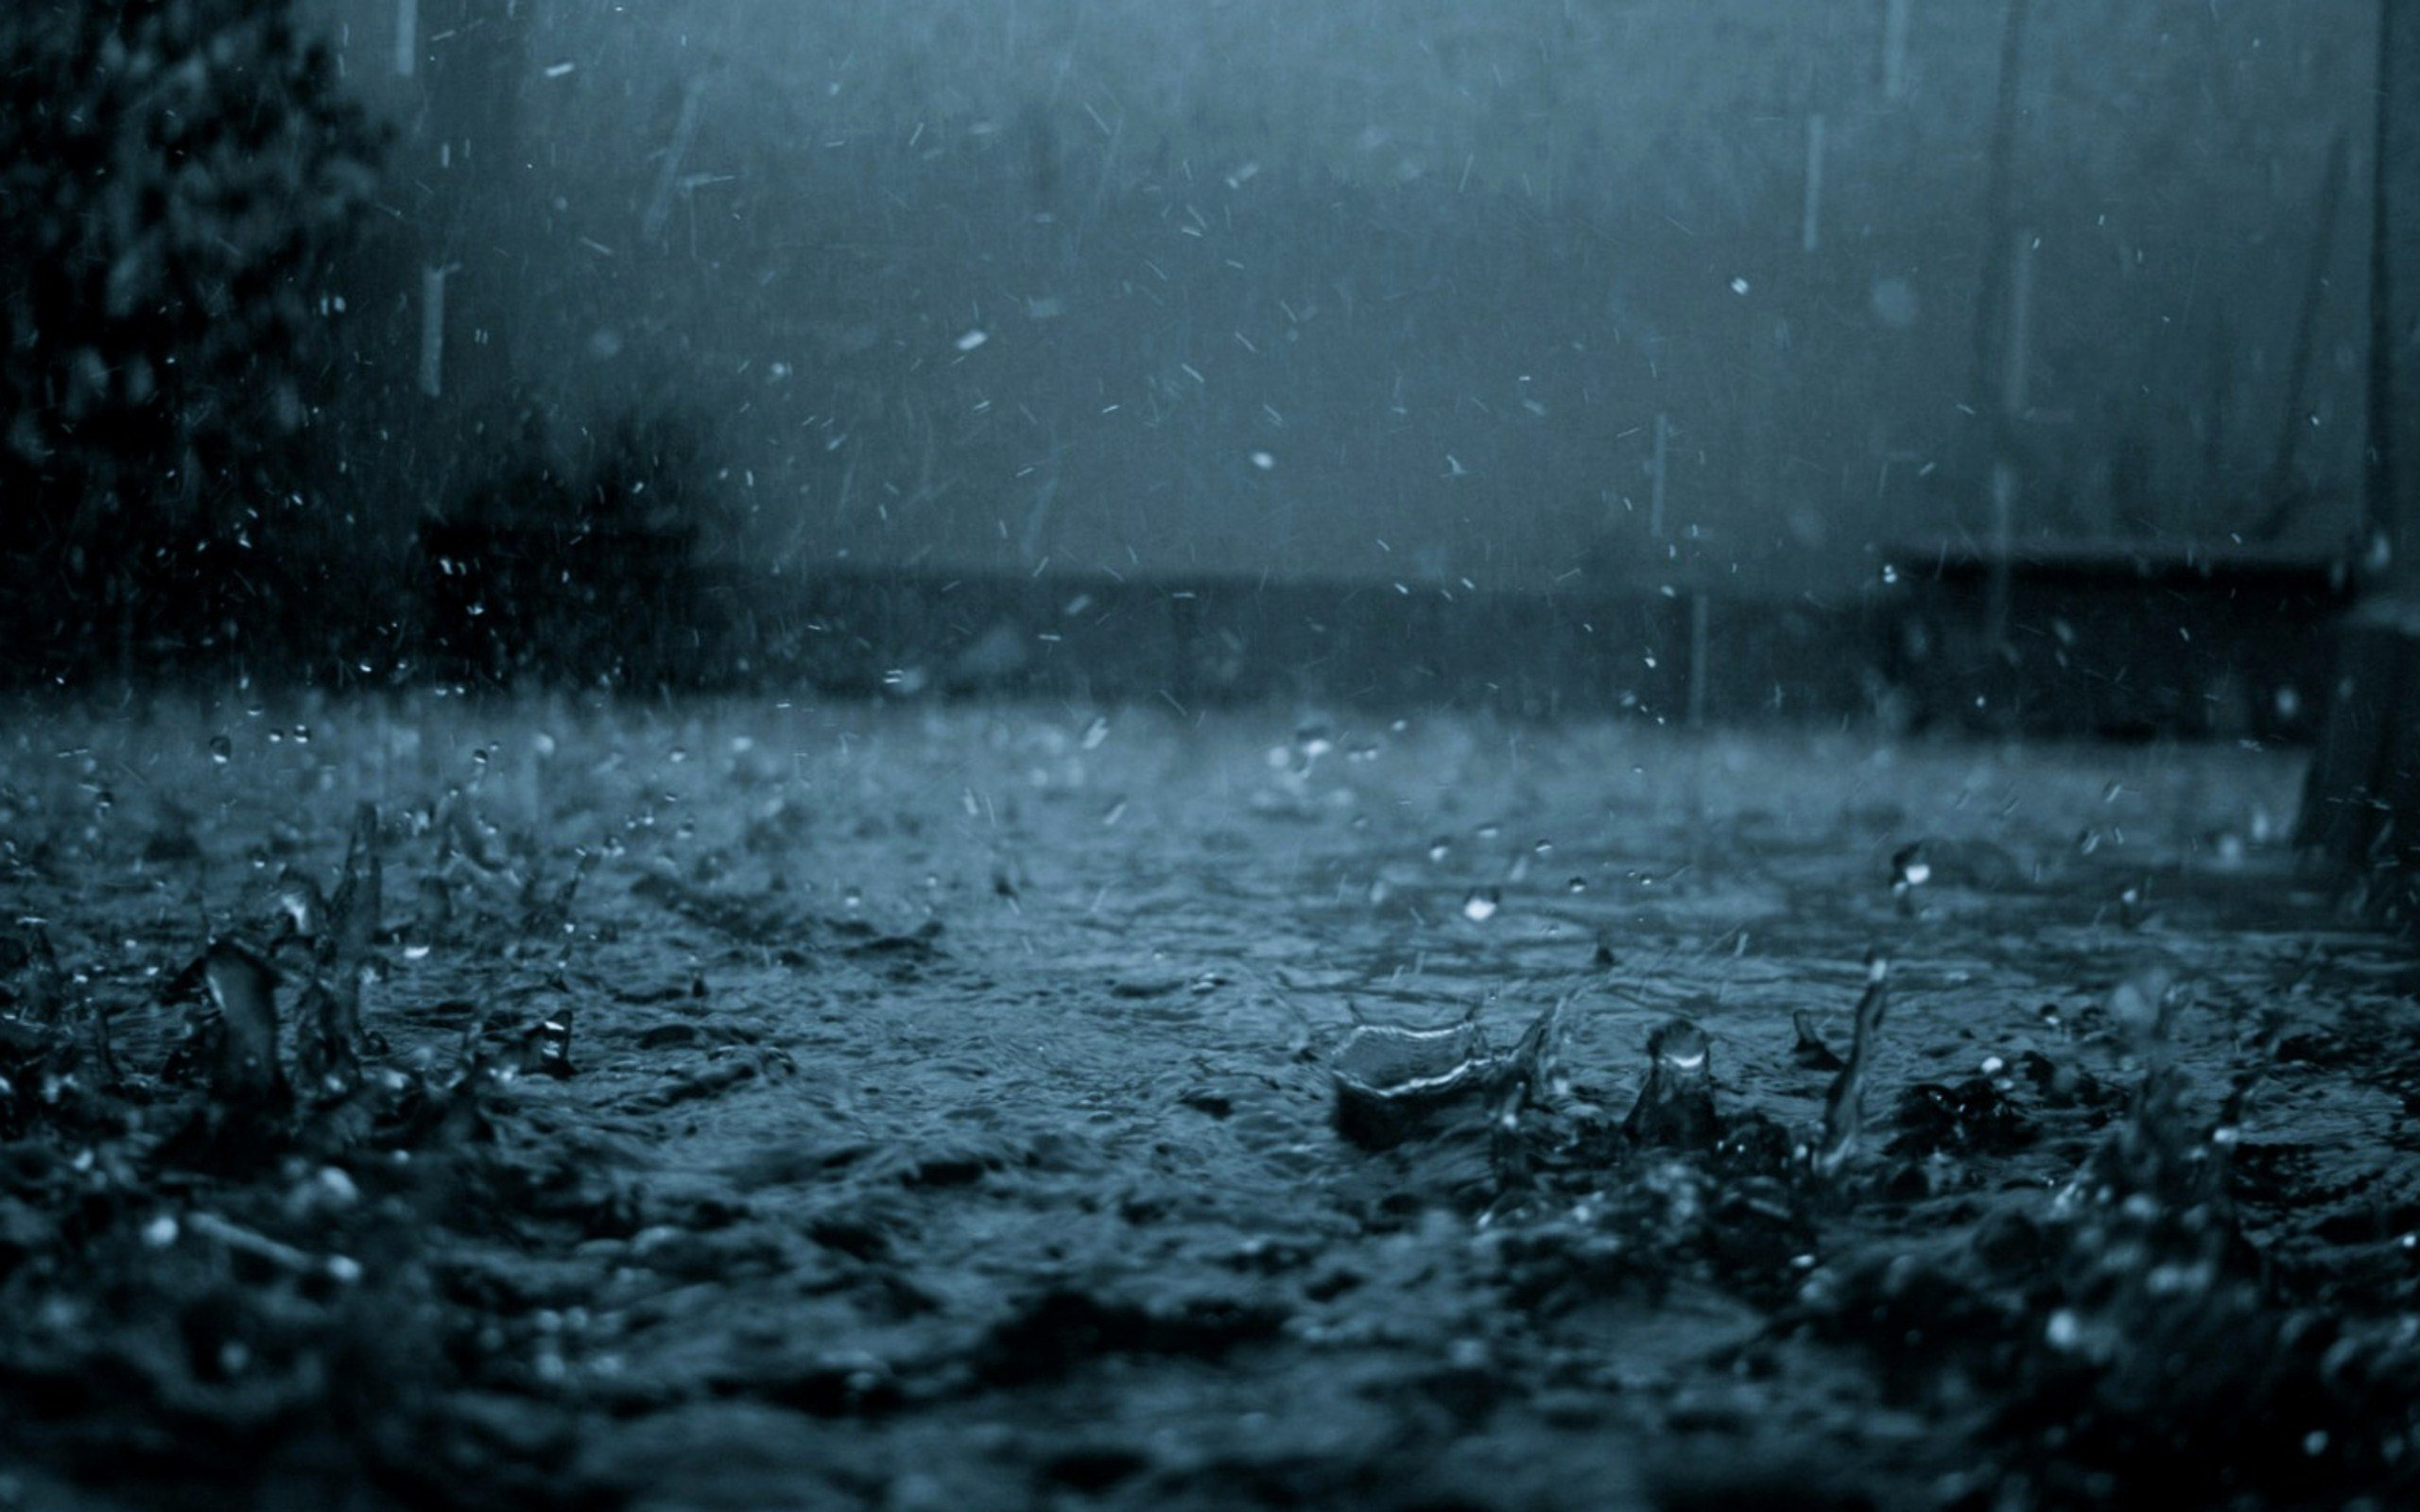 Rain Desktop HD Wallpaper